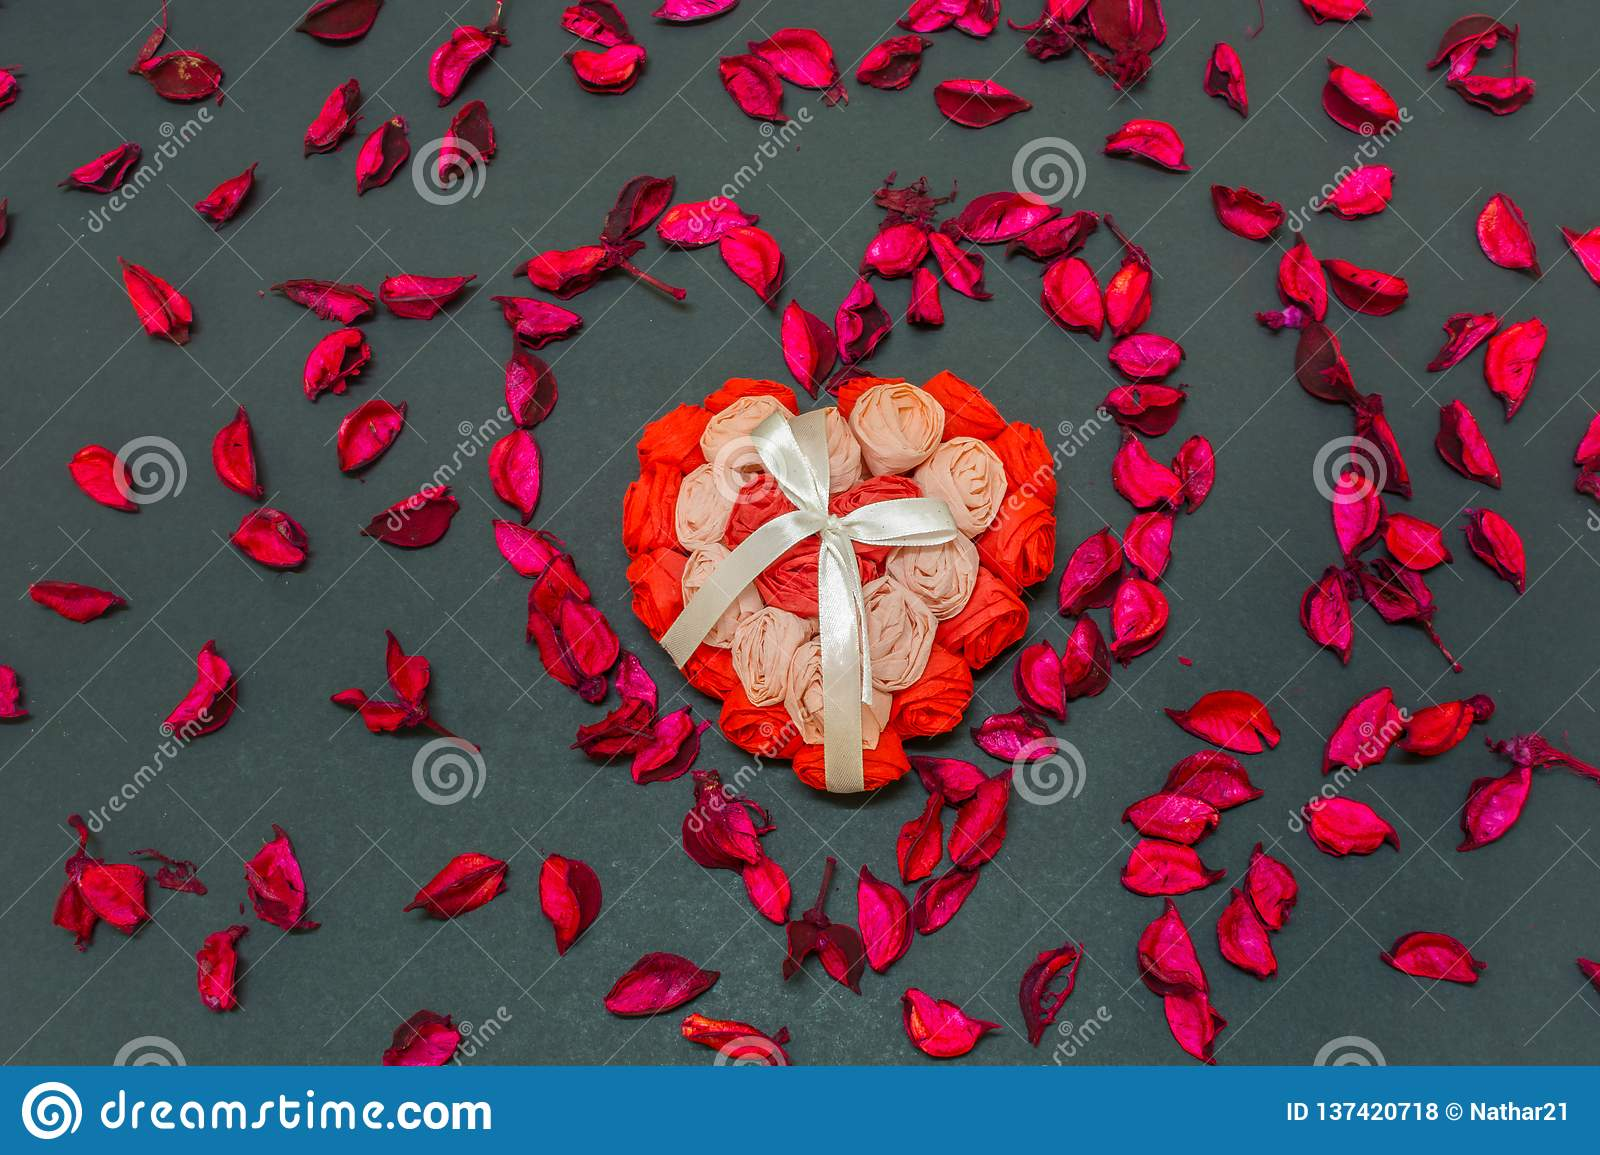 Lovely Valentines Day Gift for the love of life in the centre of heart shaped rose petals